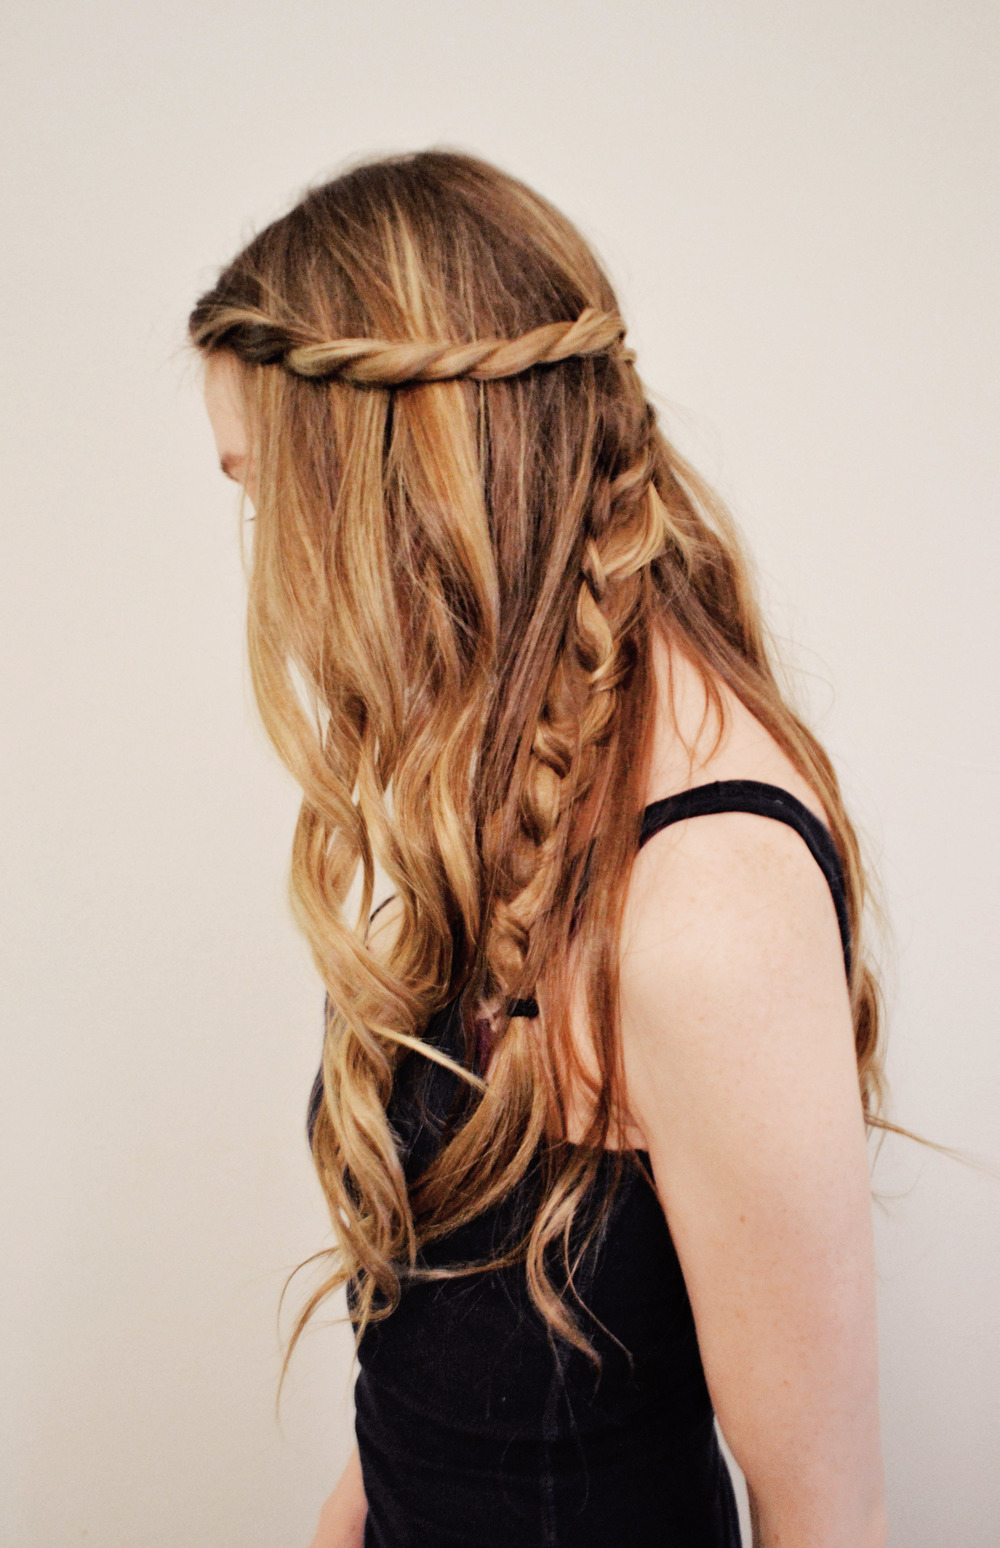 Game of Thrones Daenerys Inspired Half-Up Hair | Girl x Garment